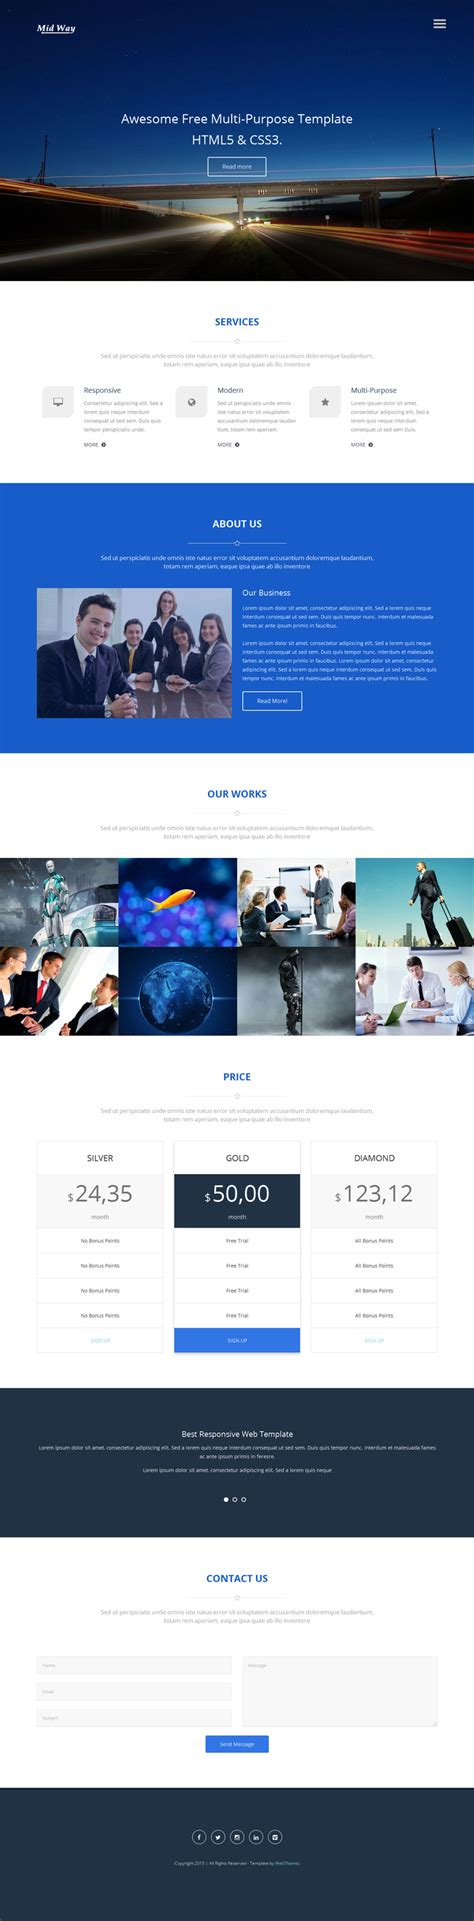 free website templates for business in html5 10 best free website html5 templates february 2015